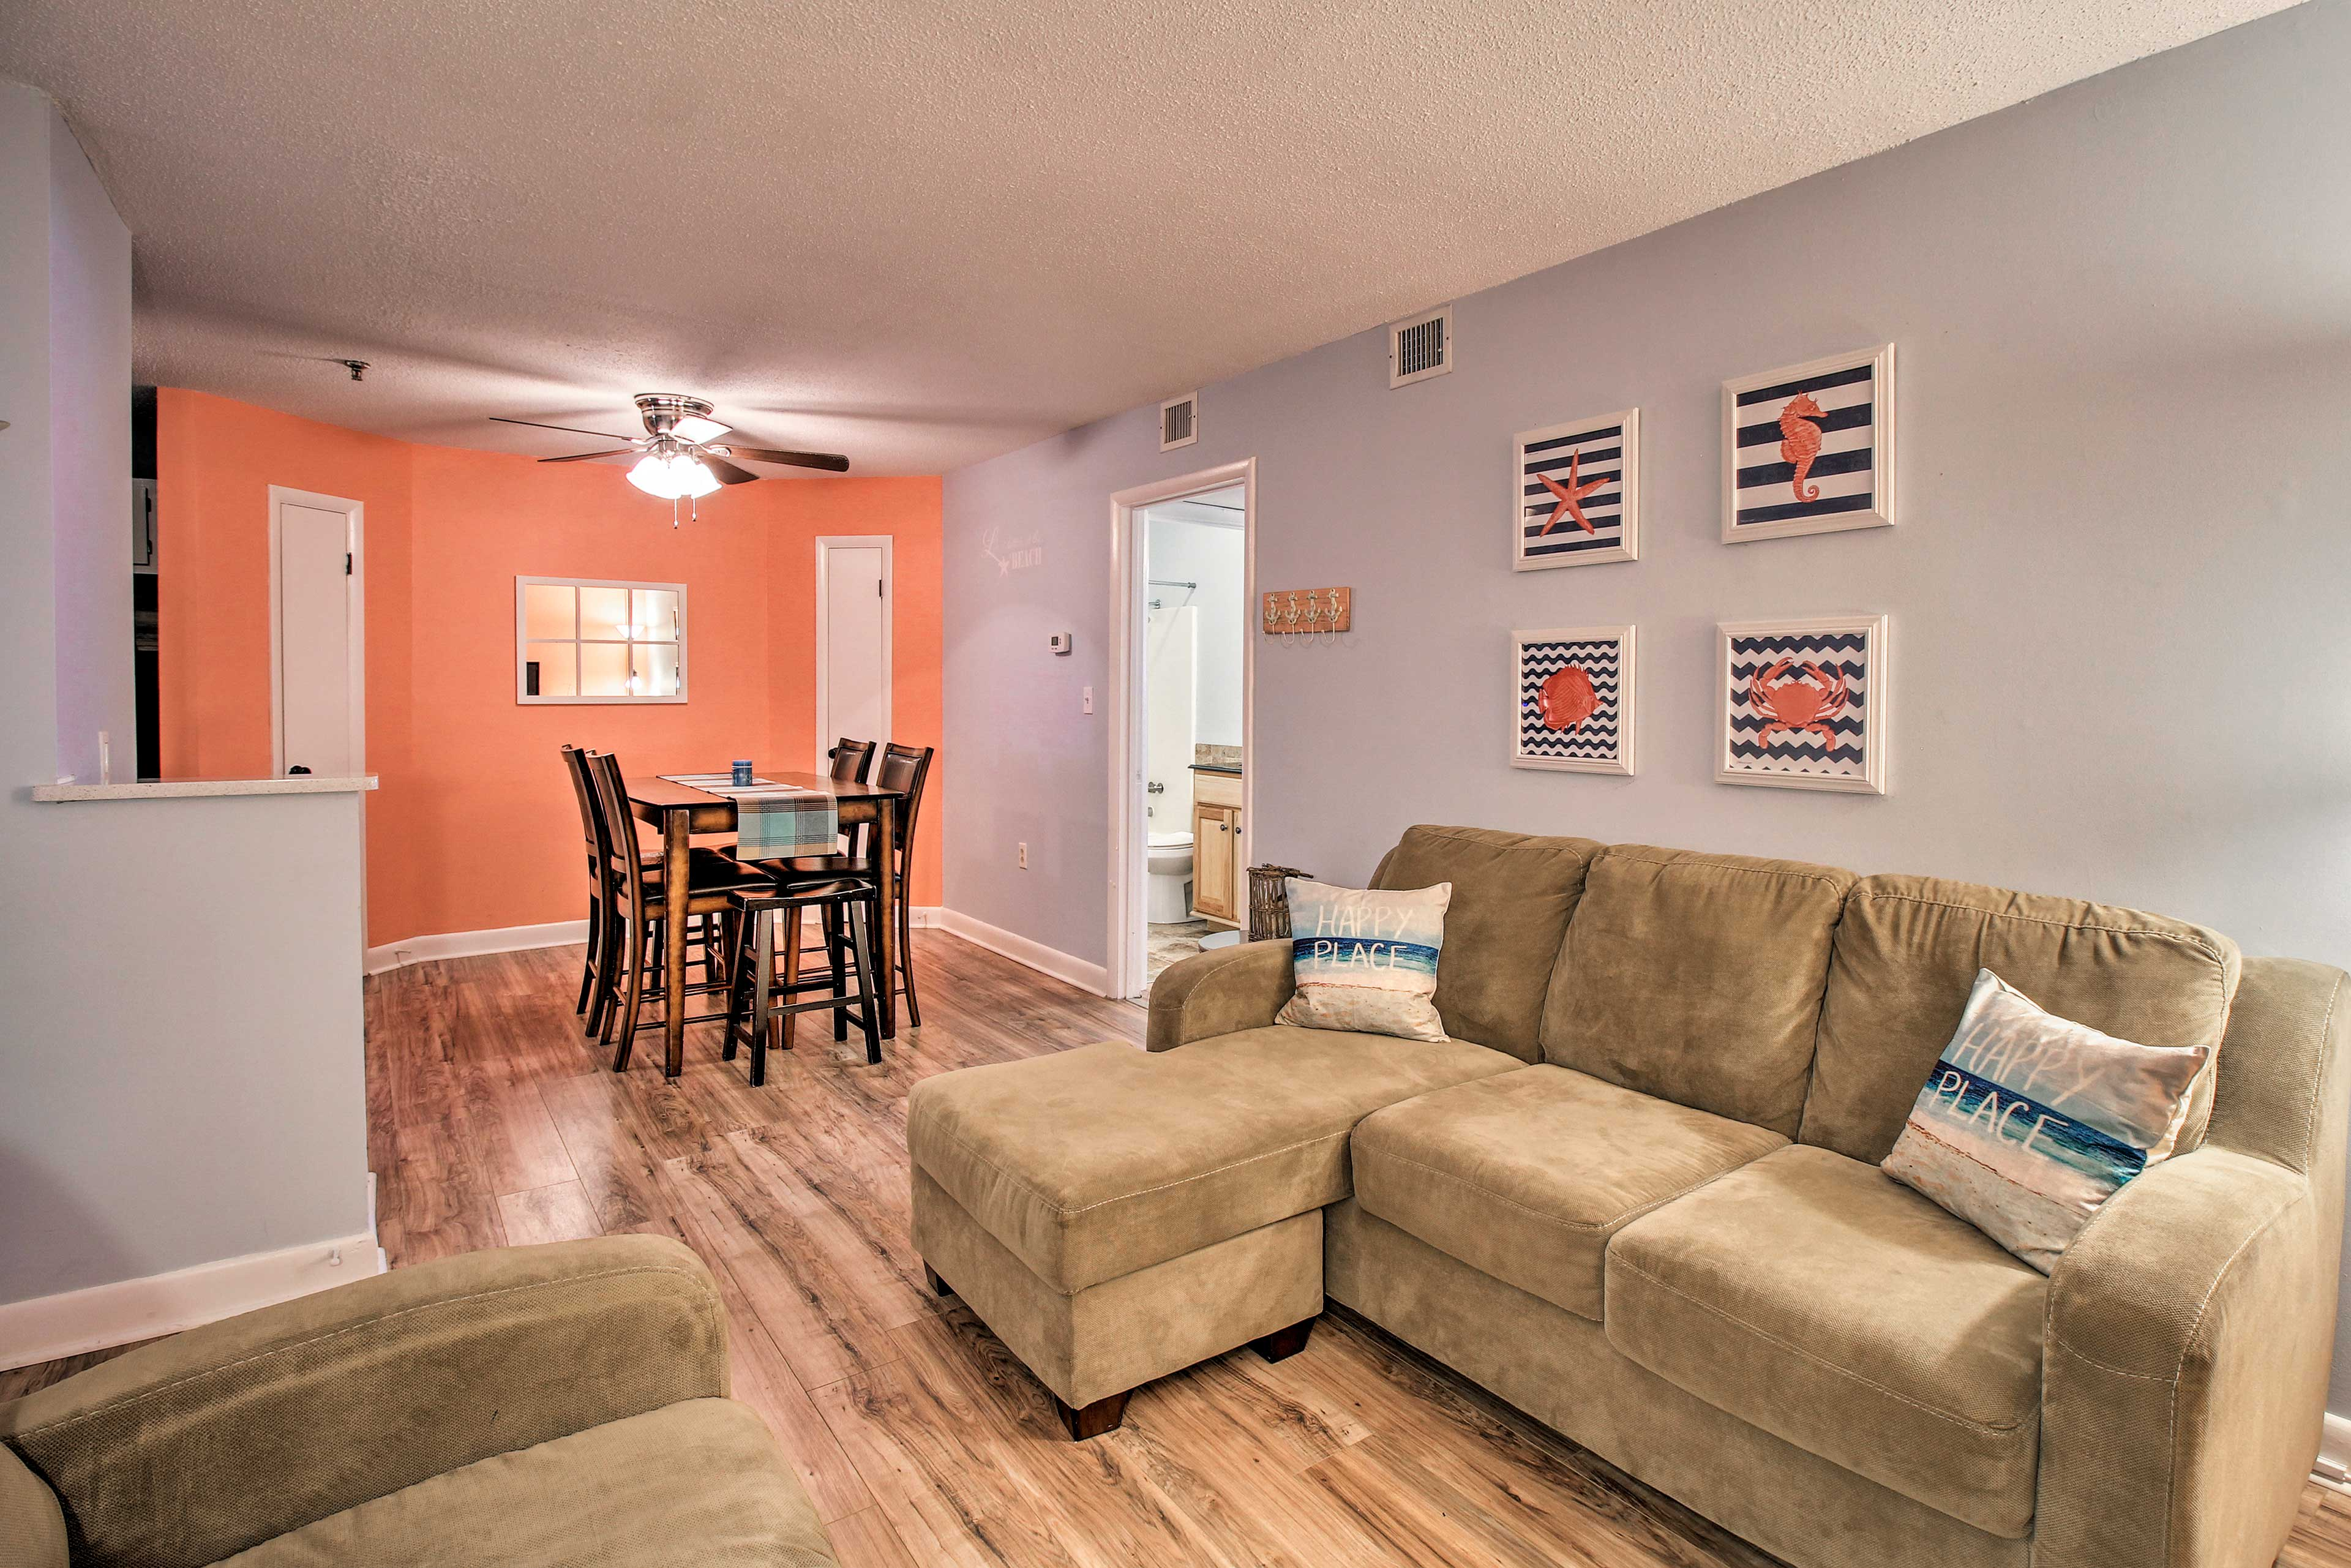 The open-concept floor plan makes this home feel spacious and inviting.